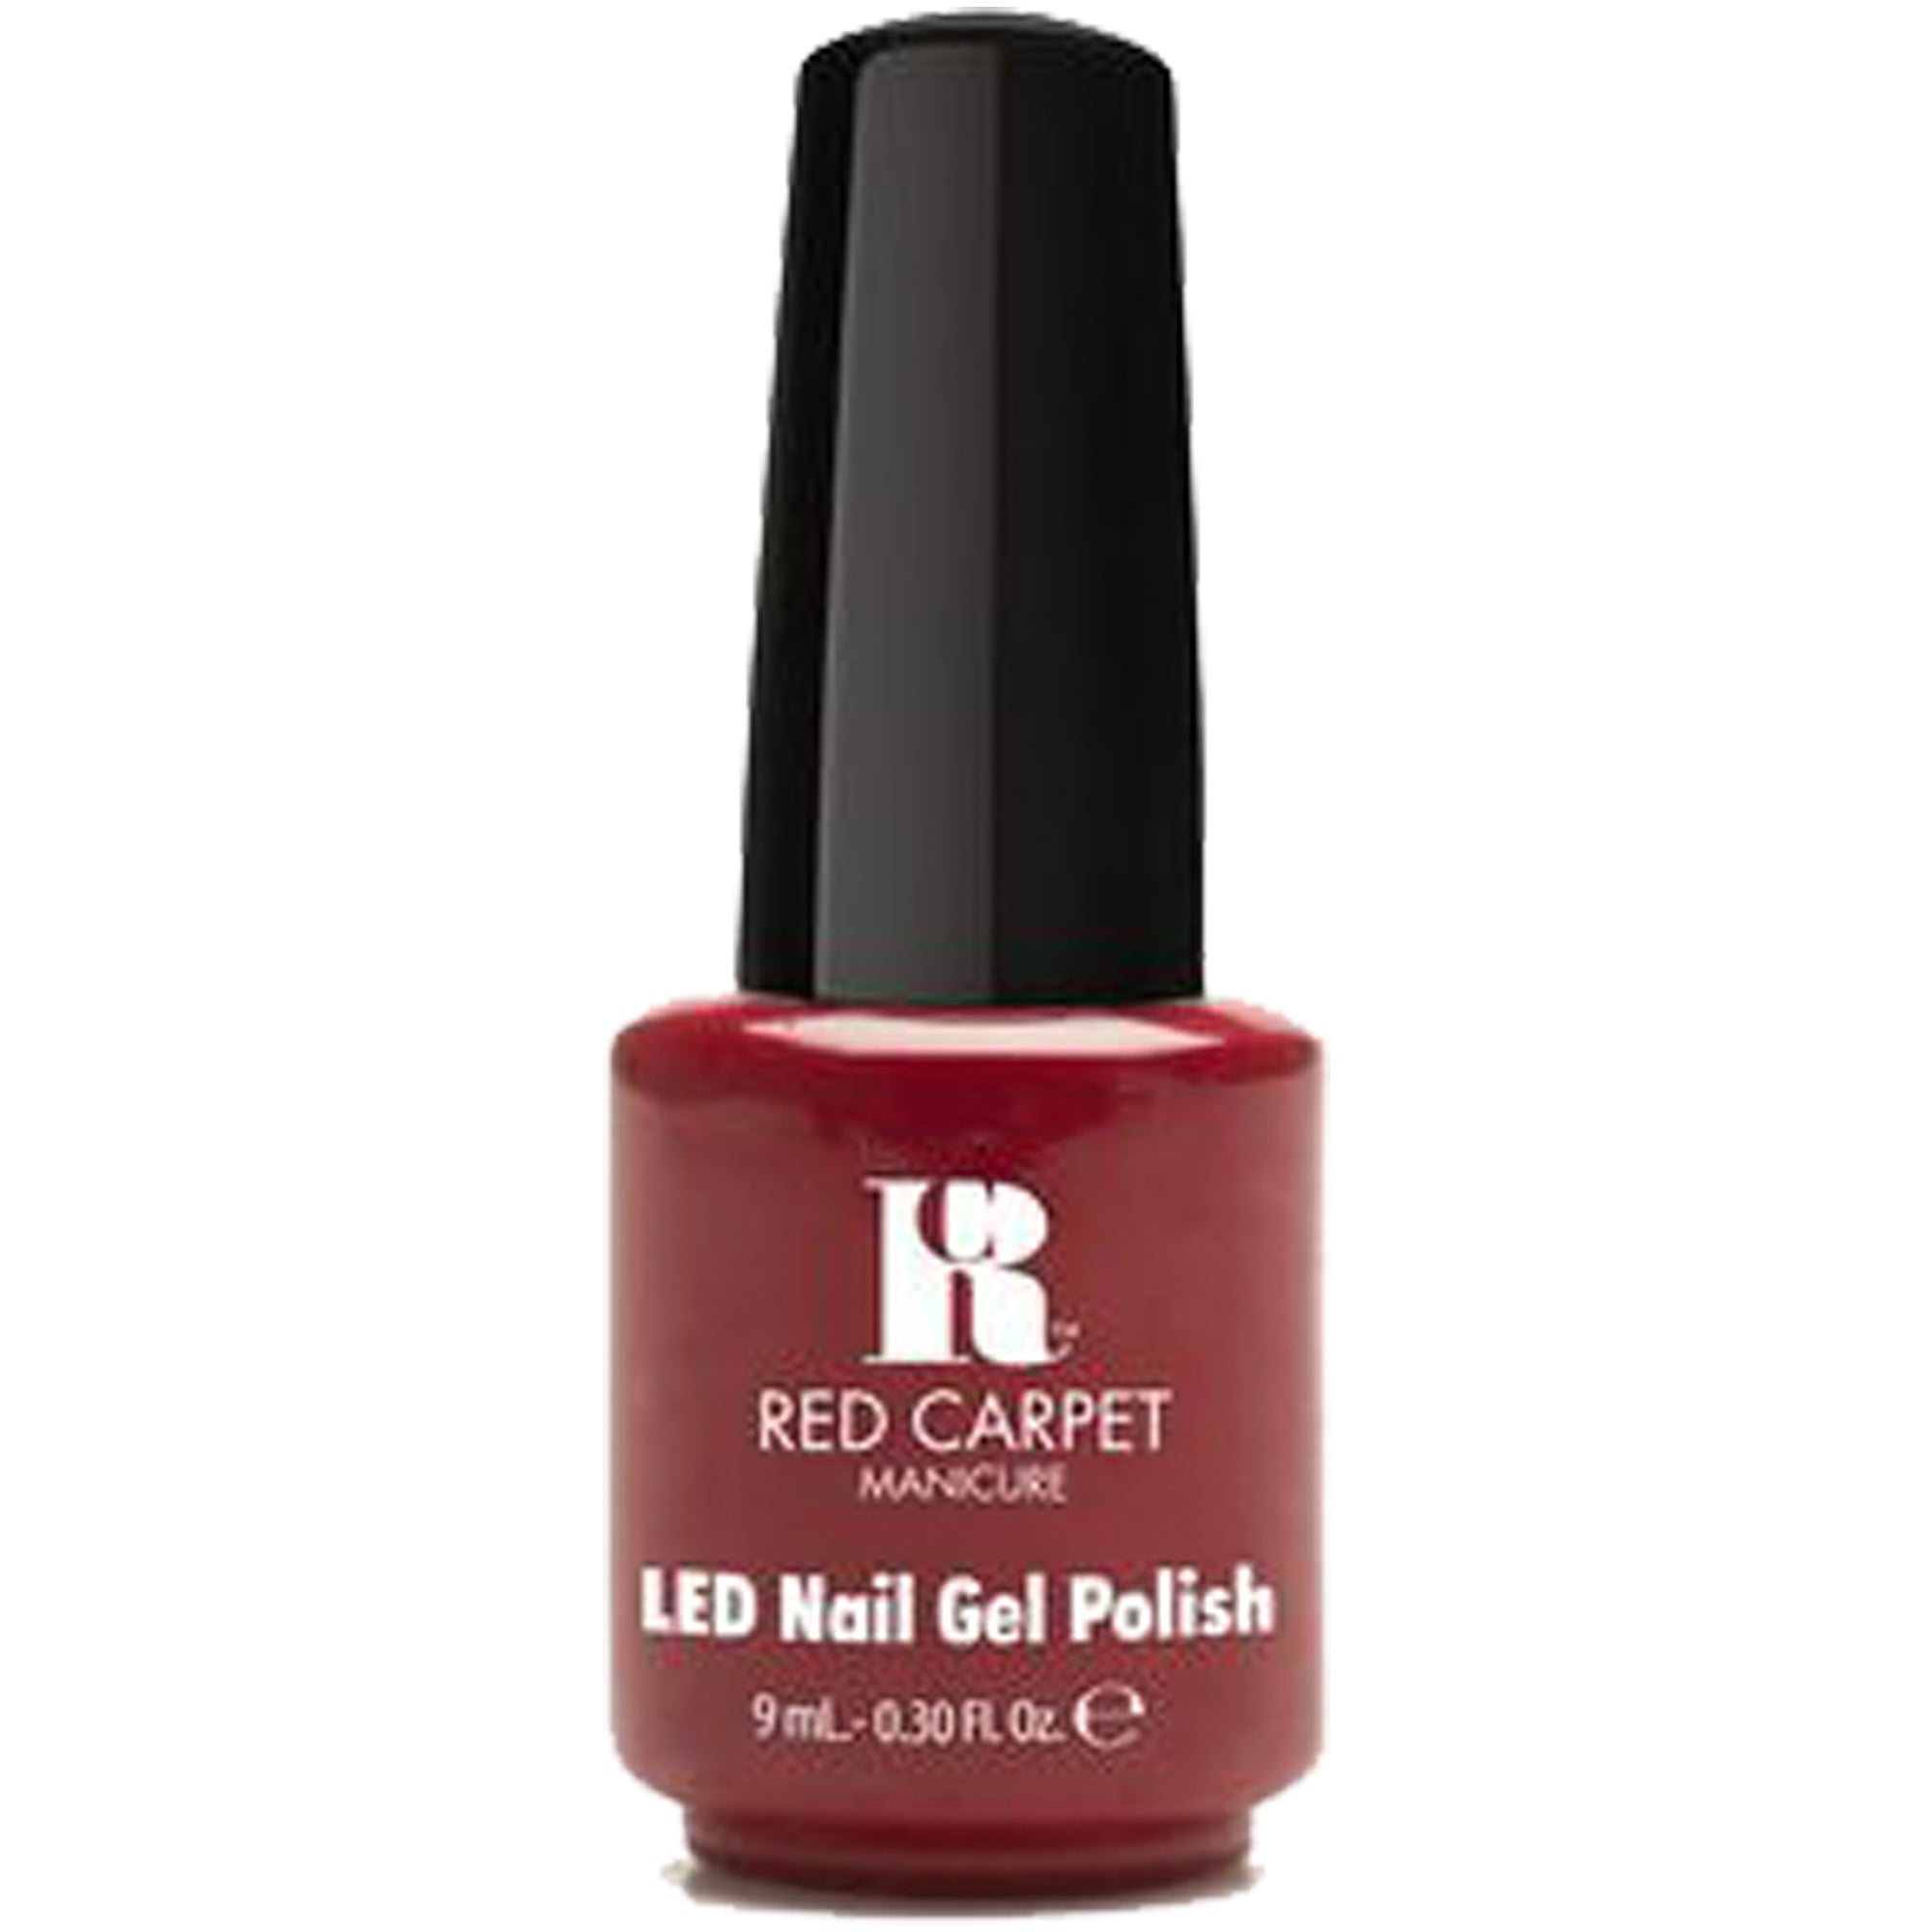 Red Carpet Dazzling Gems LED Gel Nail Polish Collection